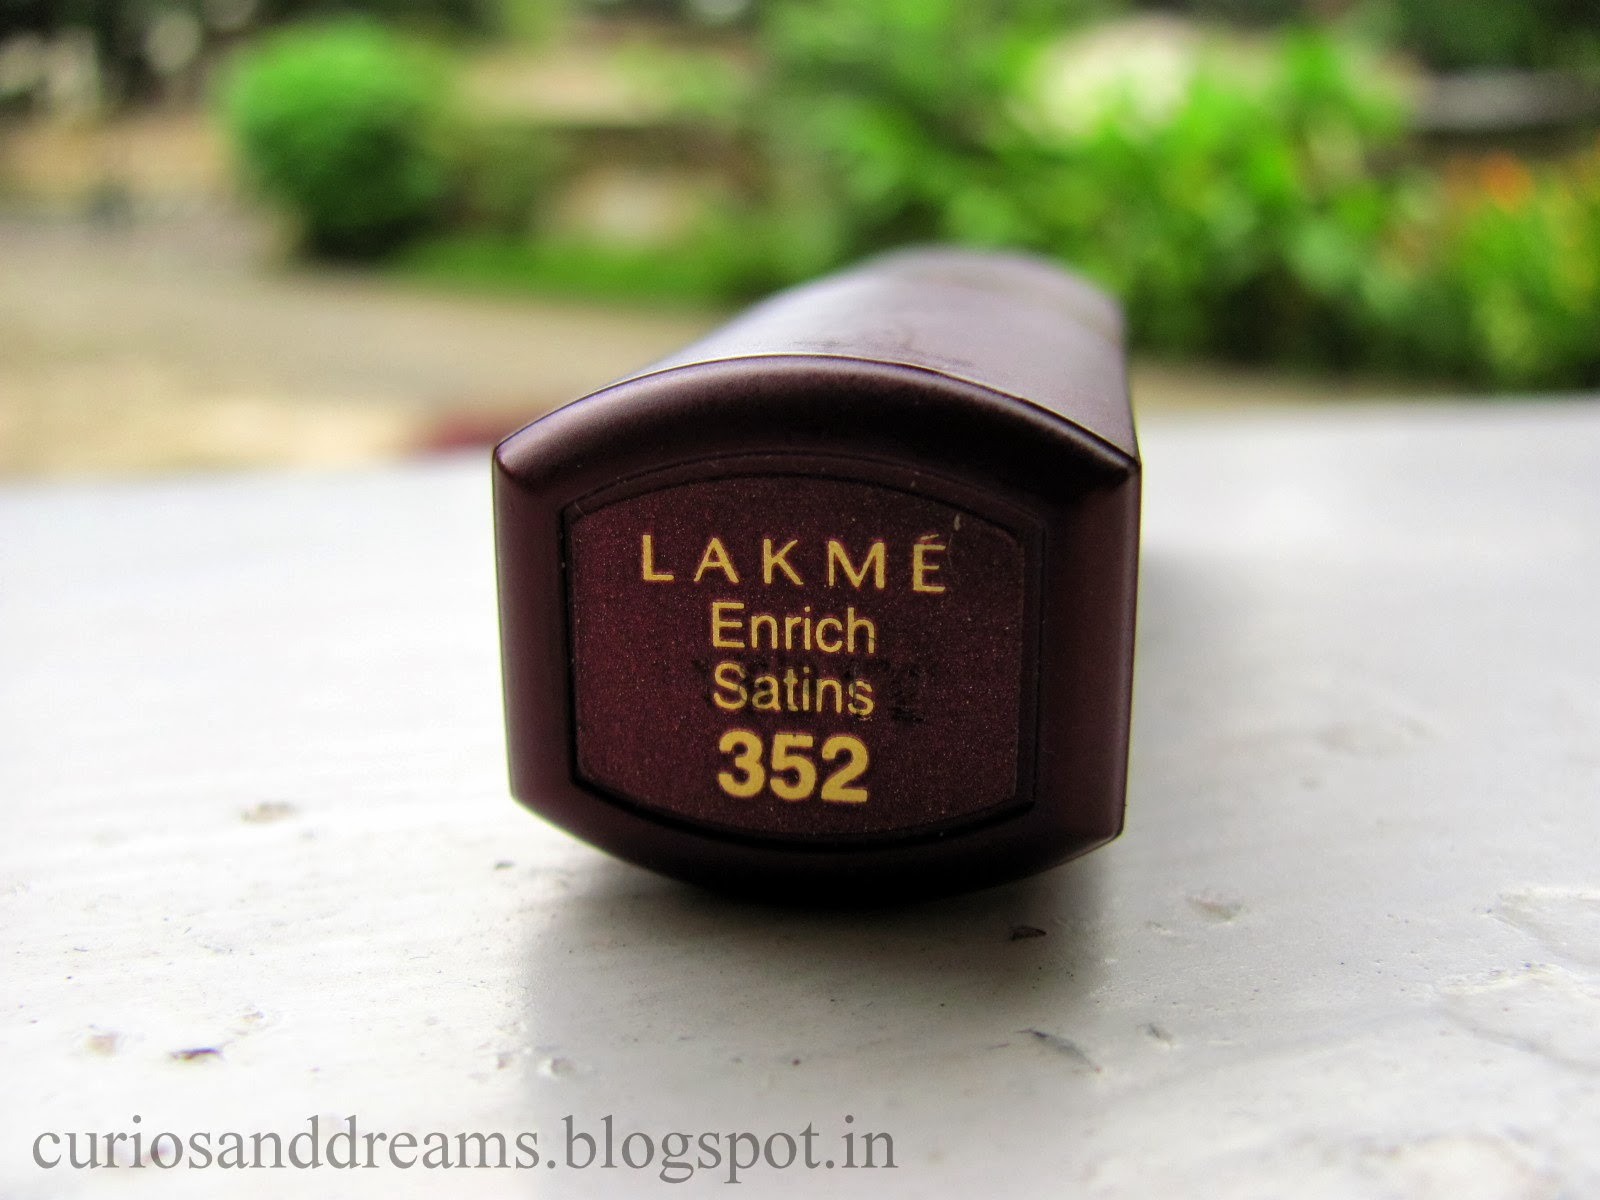 Lakme Enrich Satin Lipstick 352 review, Lakme Enrich Satin Lipstick 352 cherry review, Lakme Enrich Satin Lipstick cherry review